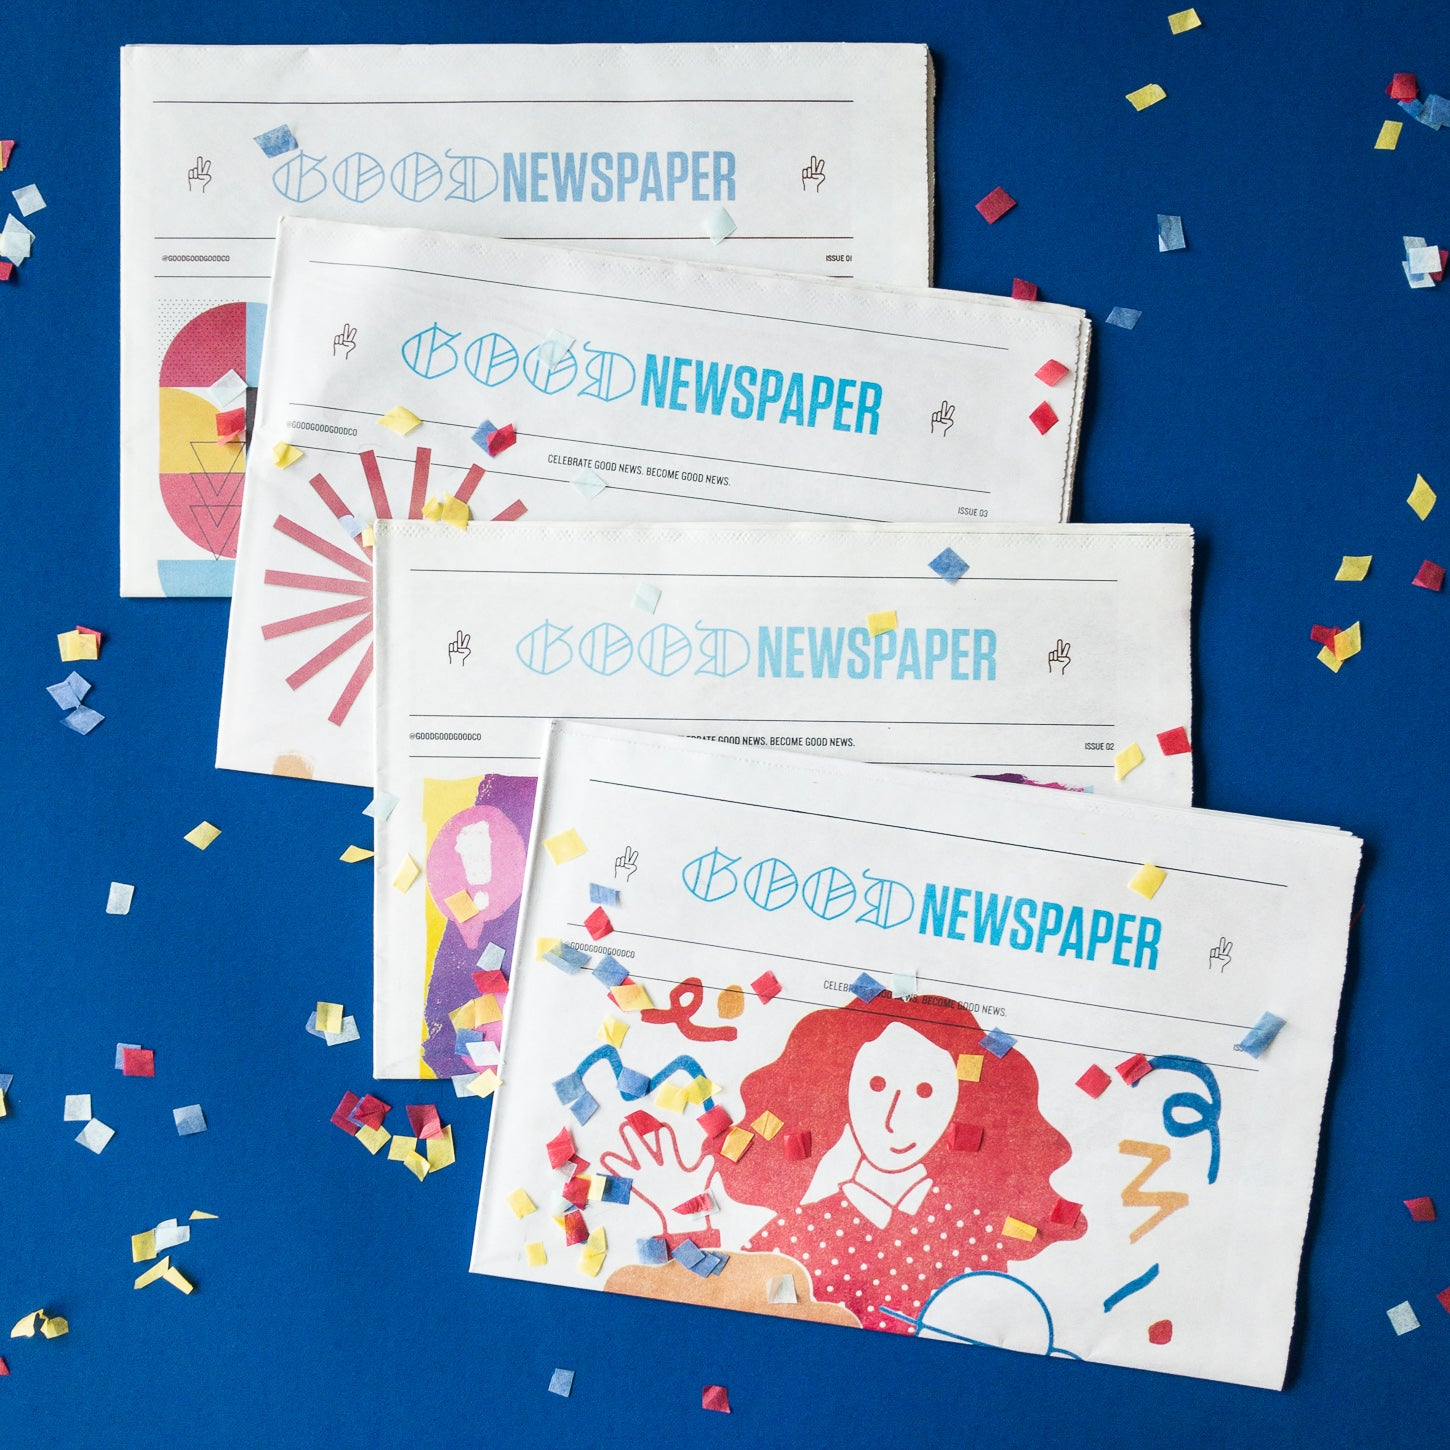 Goodnewspaper - A newspaper filled with good, positive news